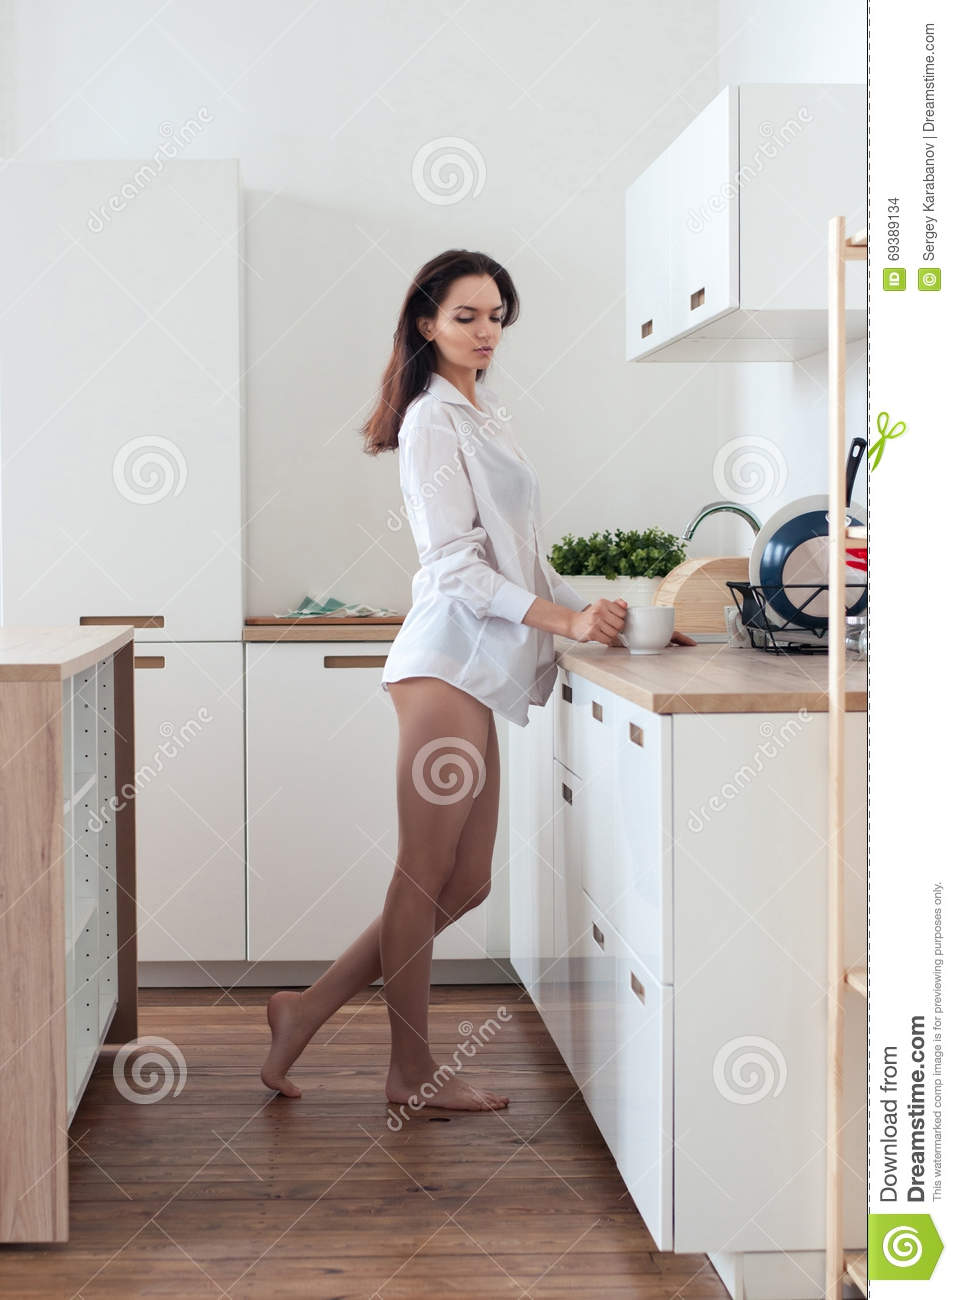 Barefoot Girl In Shirt Standing In The Kitchen Stock Photo - Image ...